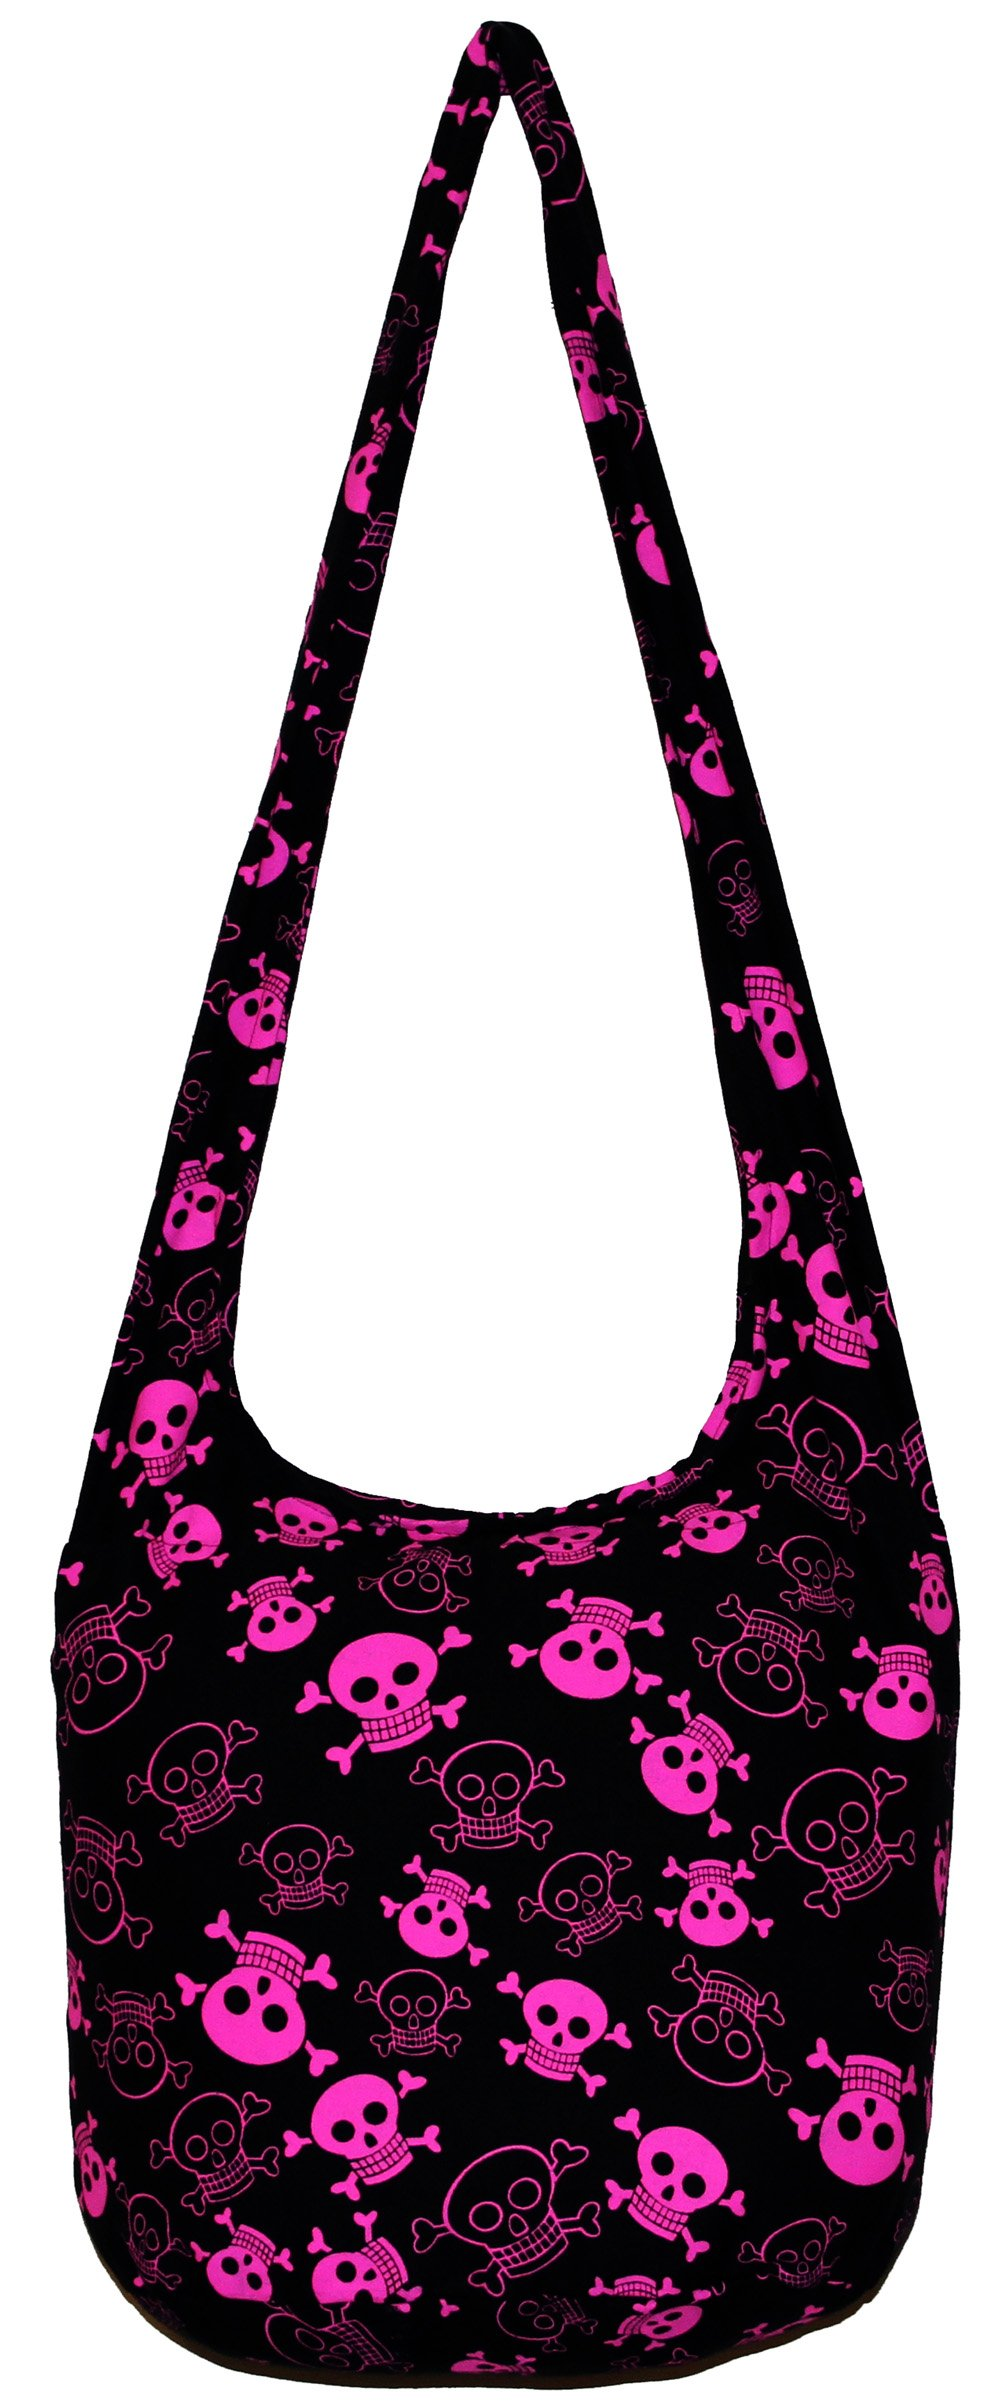 All Best Thing Pink Black Skull Bohemian Hobo Hippie Crossbody Bag Purse with Inner Lining 35 Inch N0030